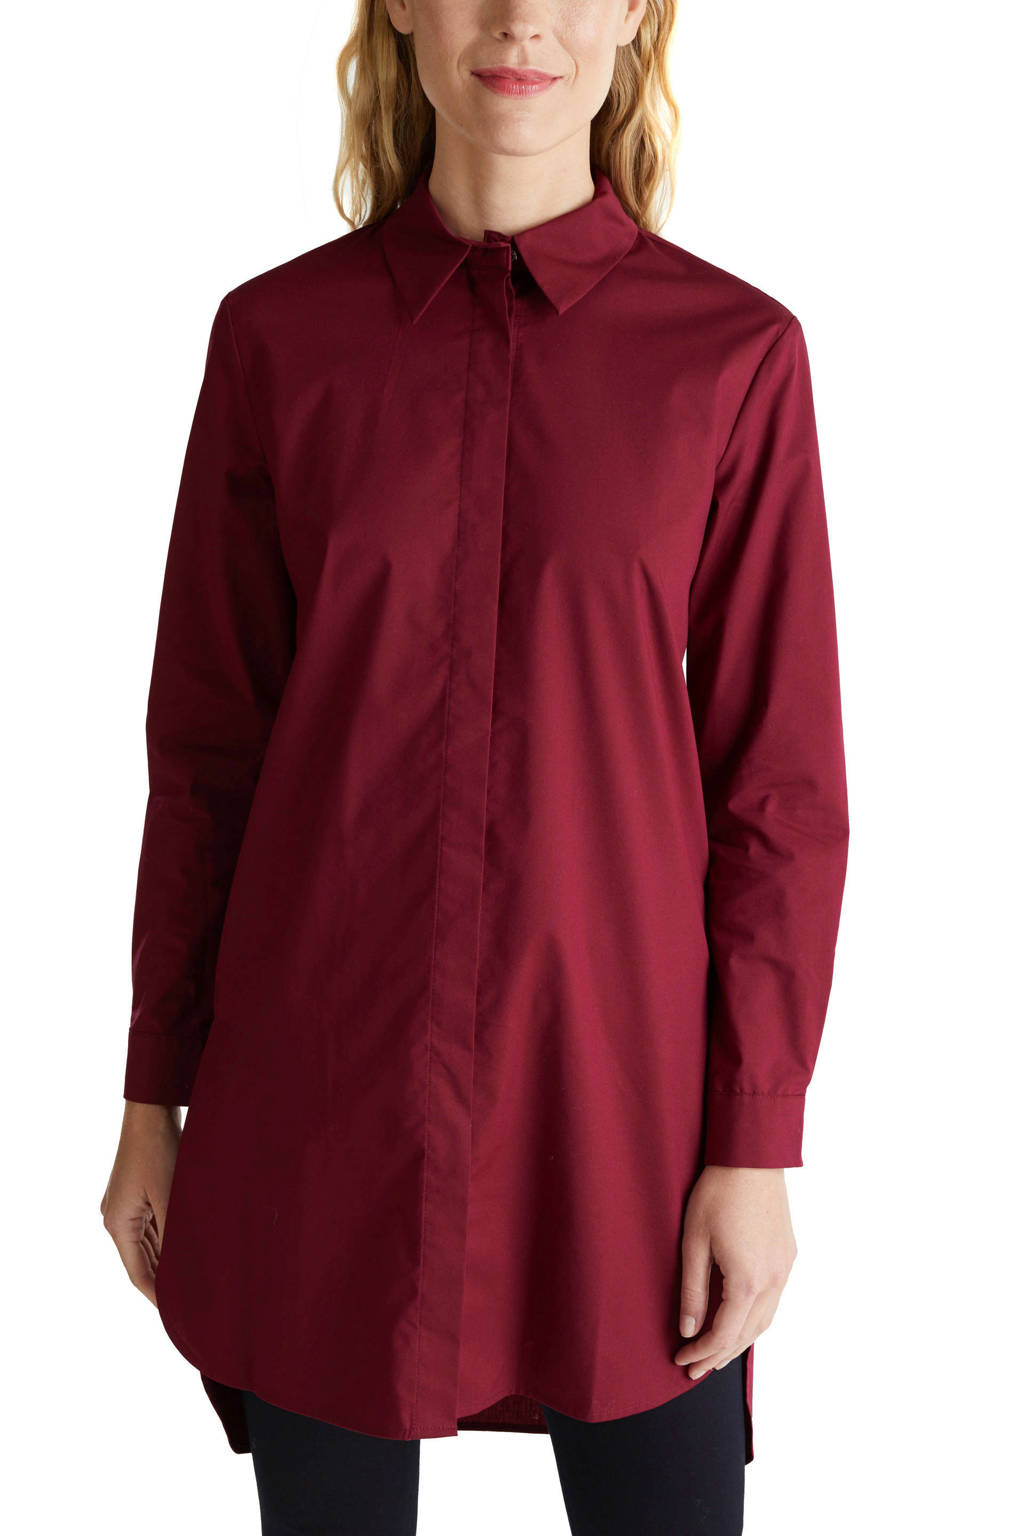 ESPRIT Women Collection blouse donkerrood, Donkerrood